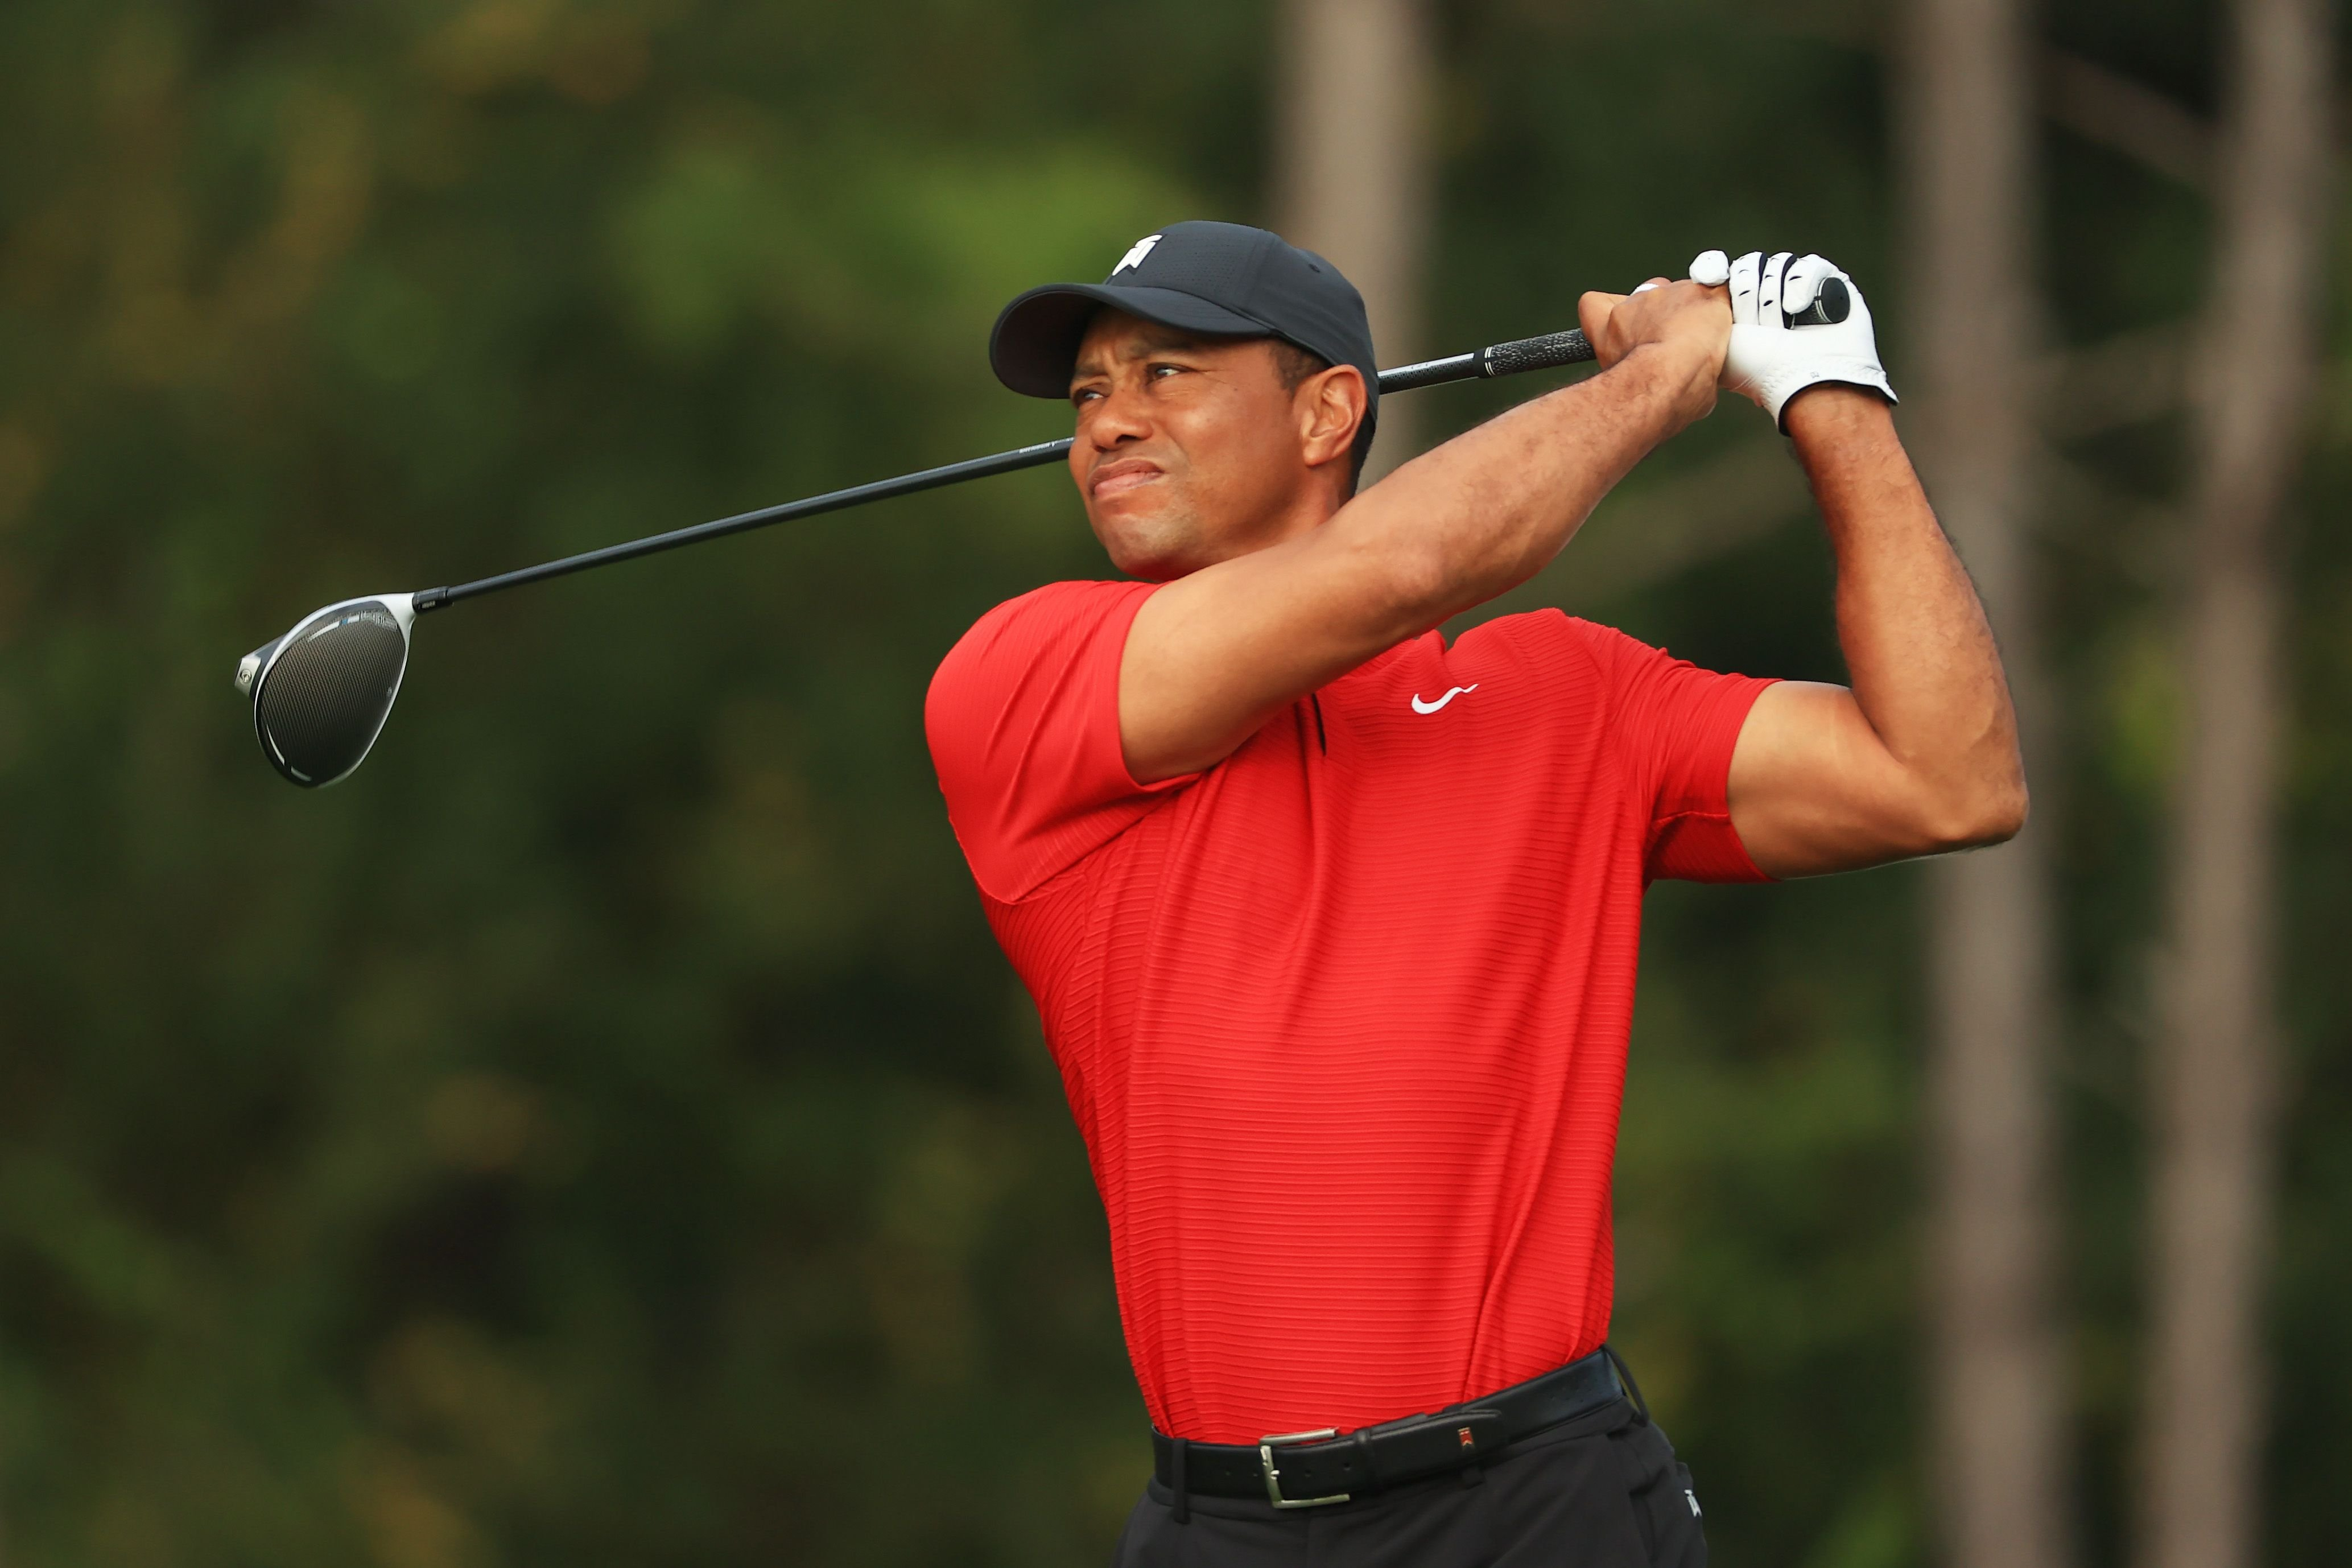 Tiger Woods plays during the final round of the PNC Championship at the Ritz-Carlton Golf Club Orlando on December 20, 2020 | Getty Images